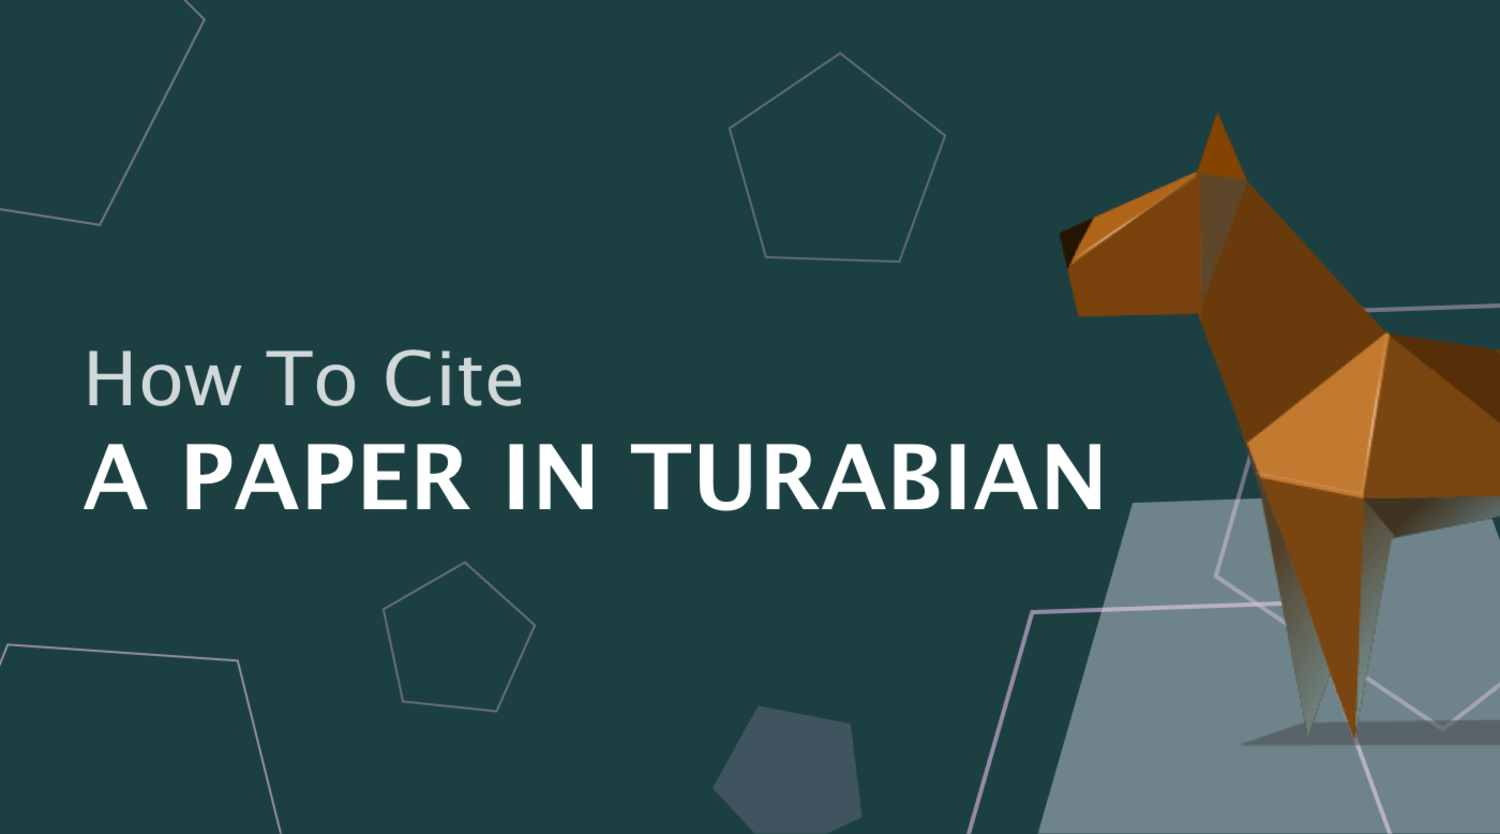 How to Cite a Paper in Turabian